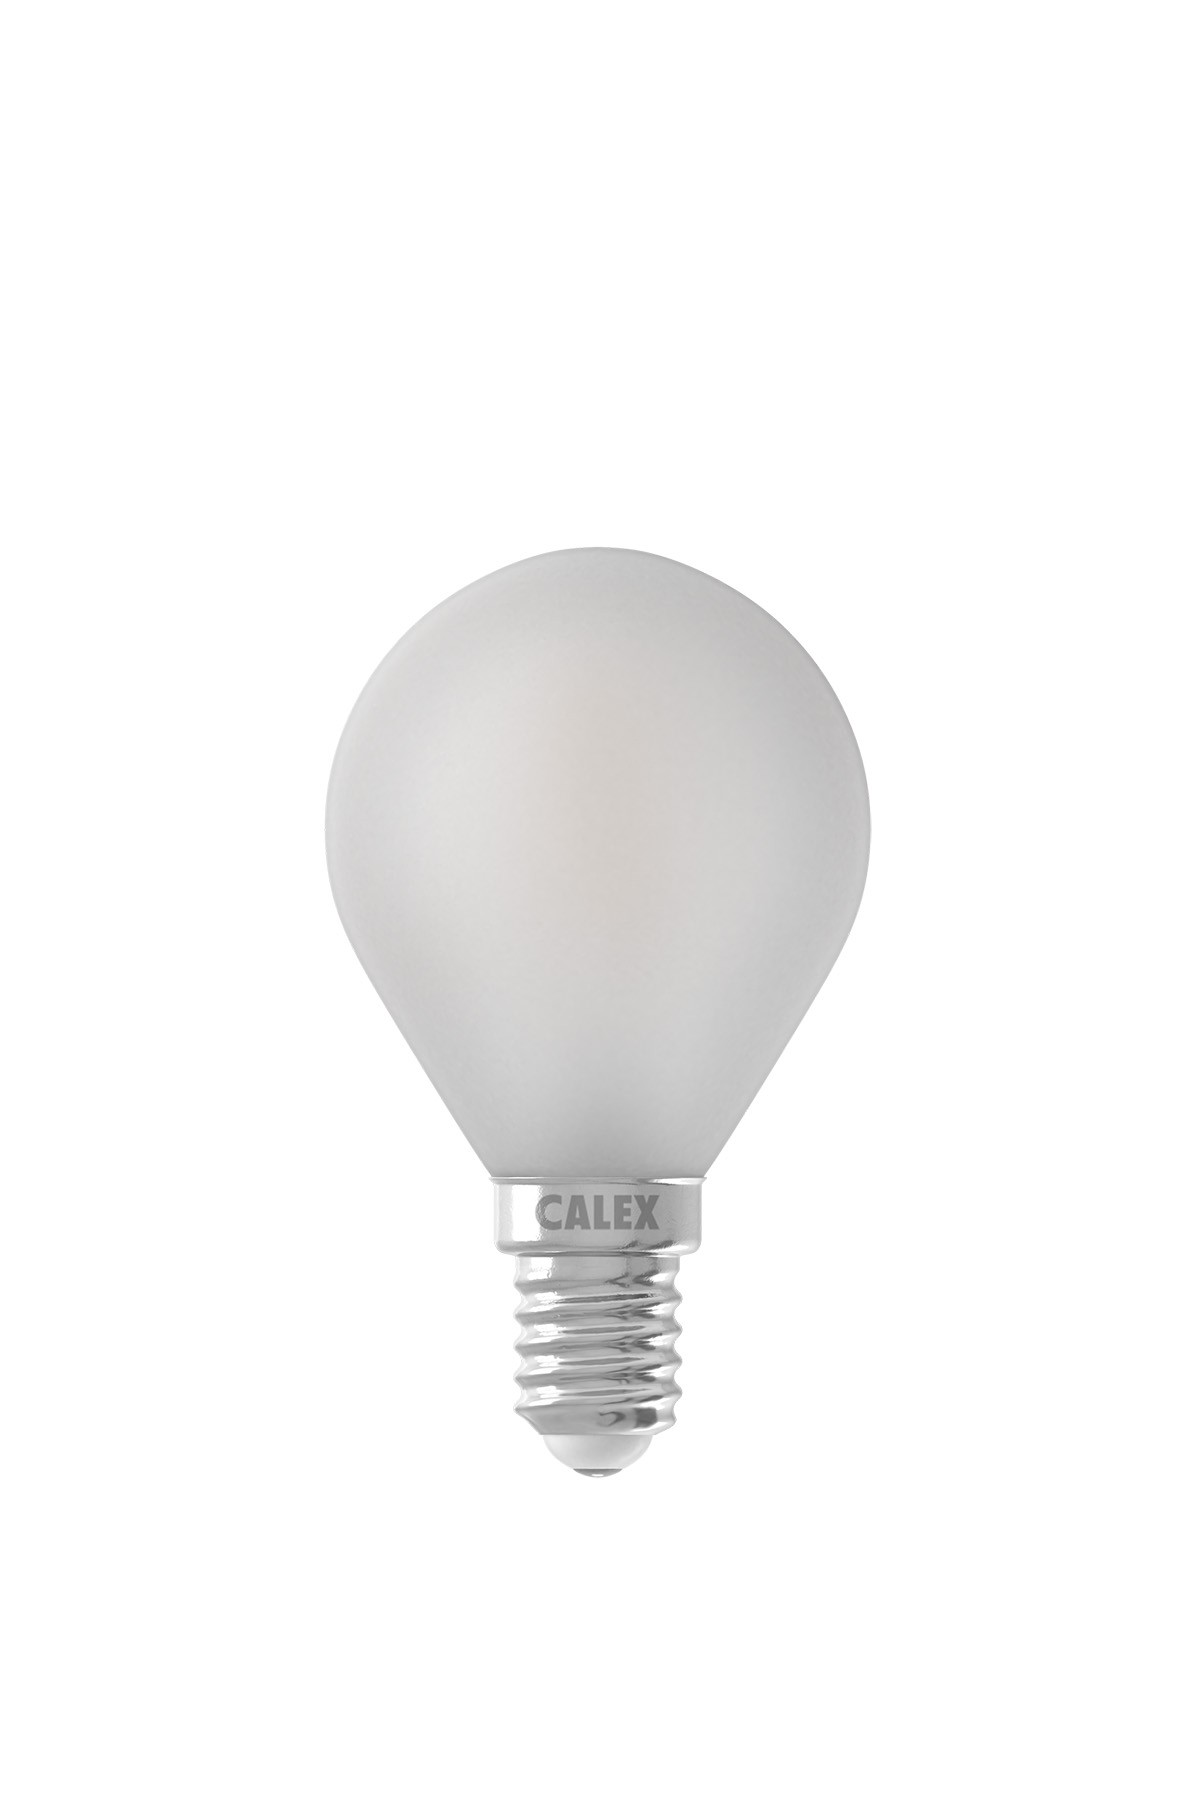 Led E 14 Calex Led Full Glass Filament Ball Lamp 240v 3 5w 300lm E14 P45